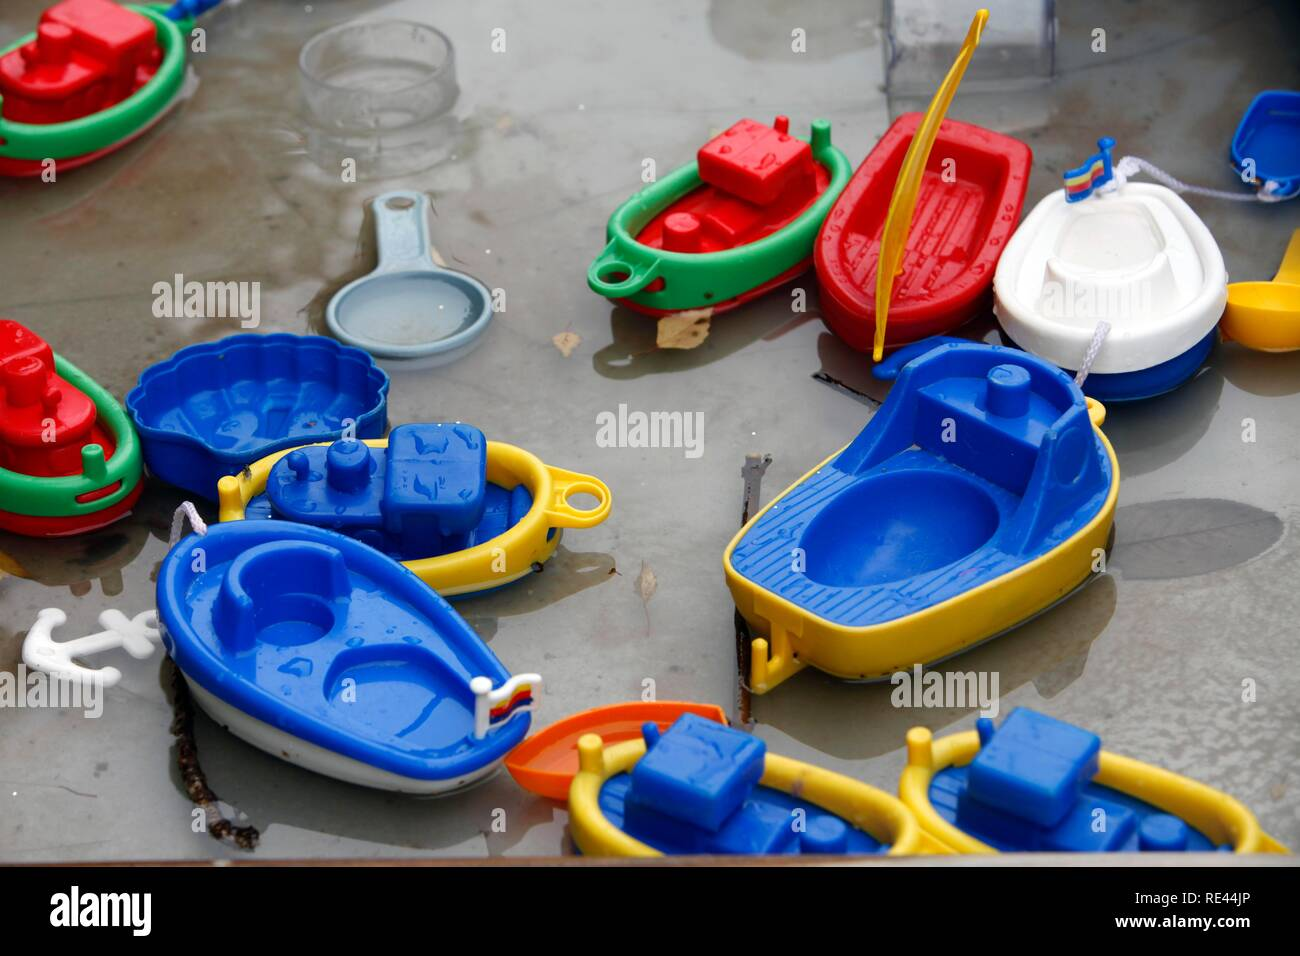 Boats, ships, plastic children's toys on a water playground Stock Photo